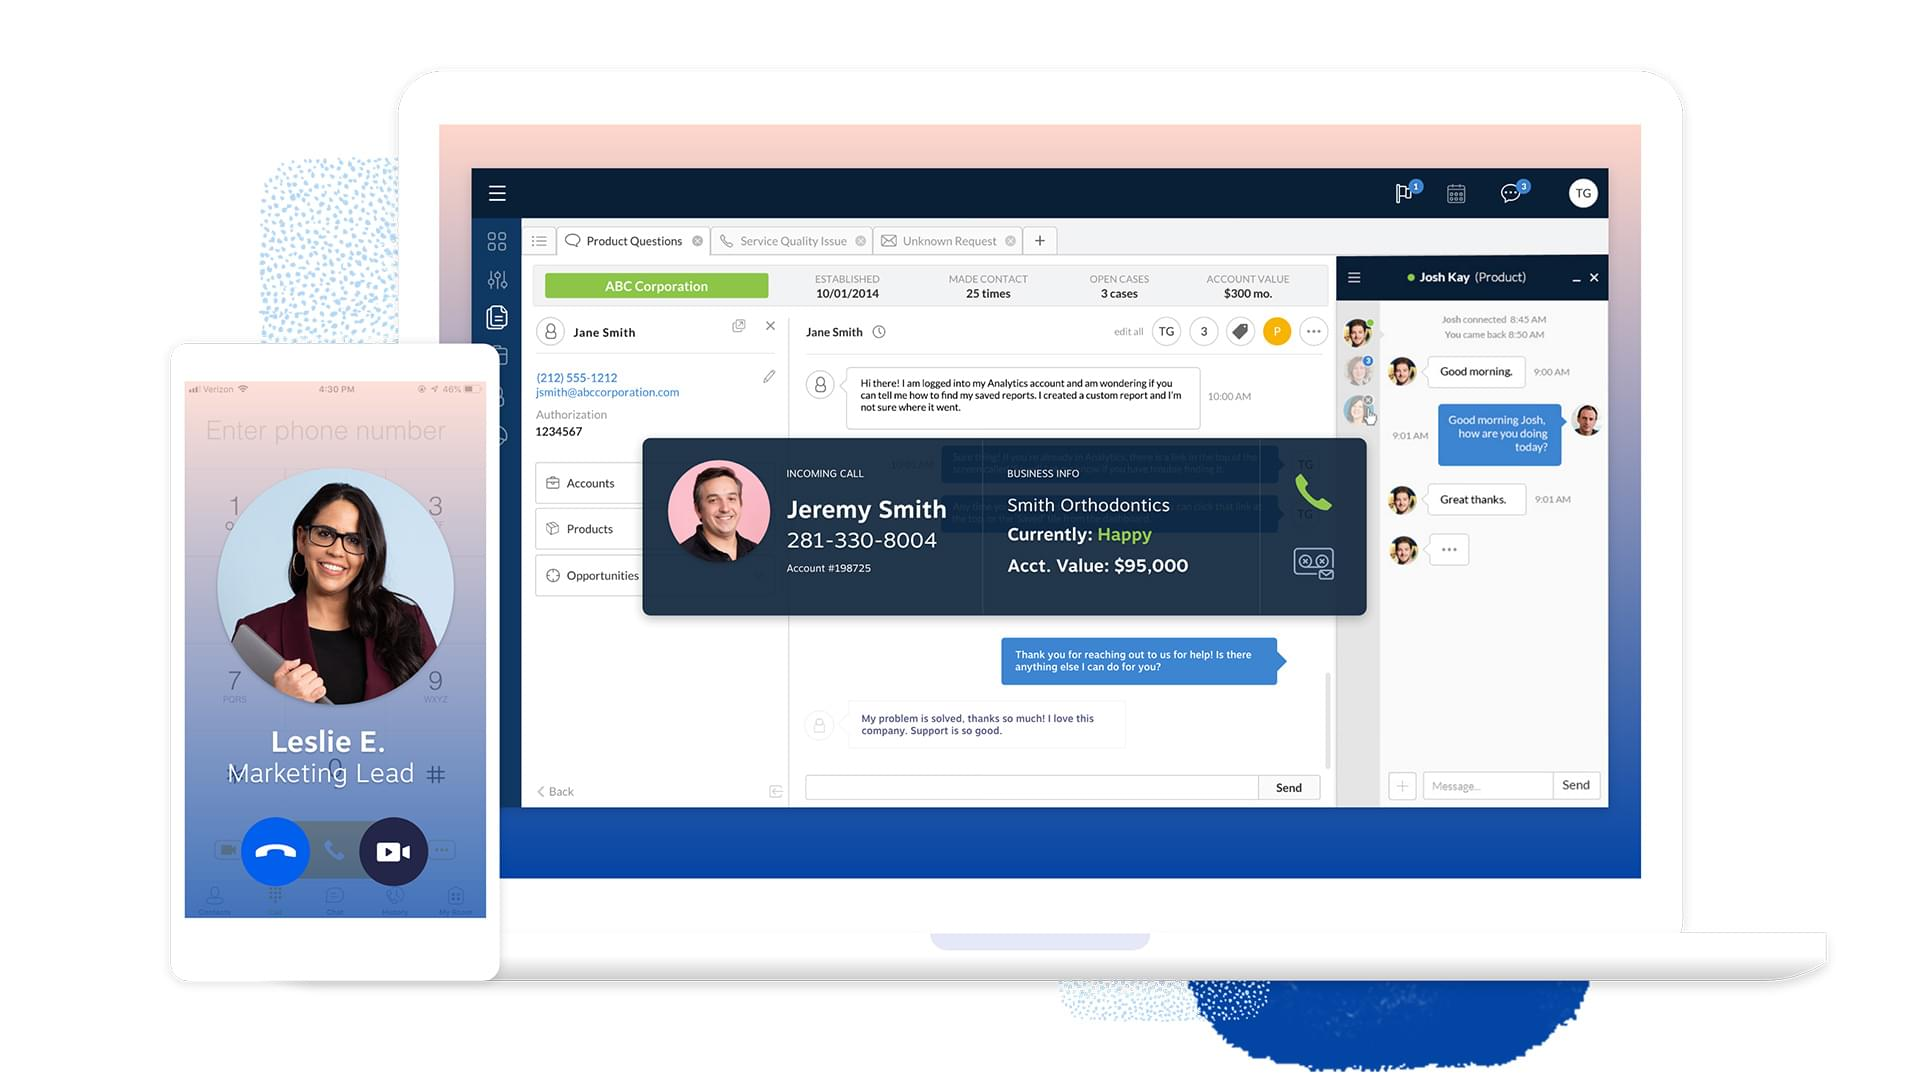 The State of Nextiva in 2019: NextOS & Amazing Service